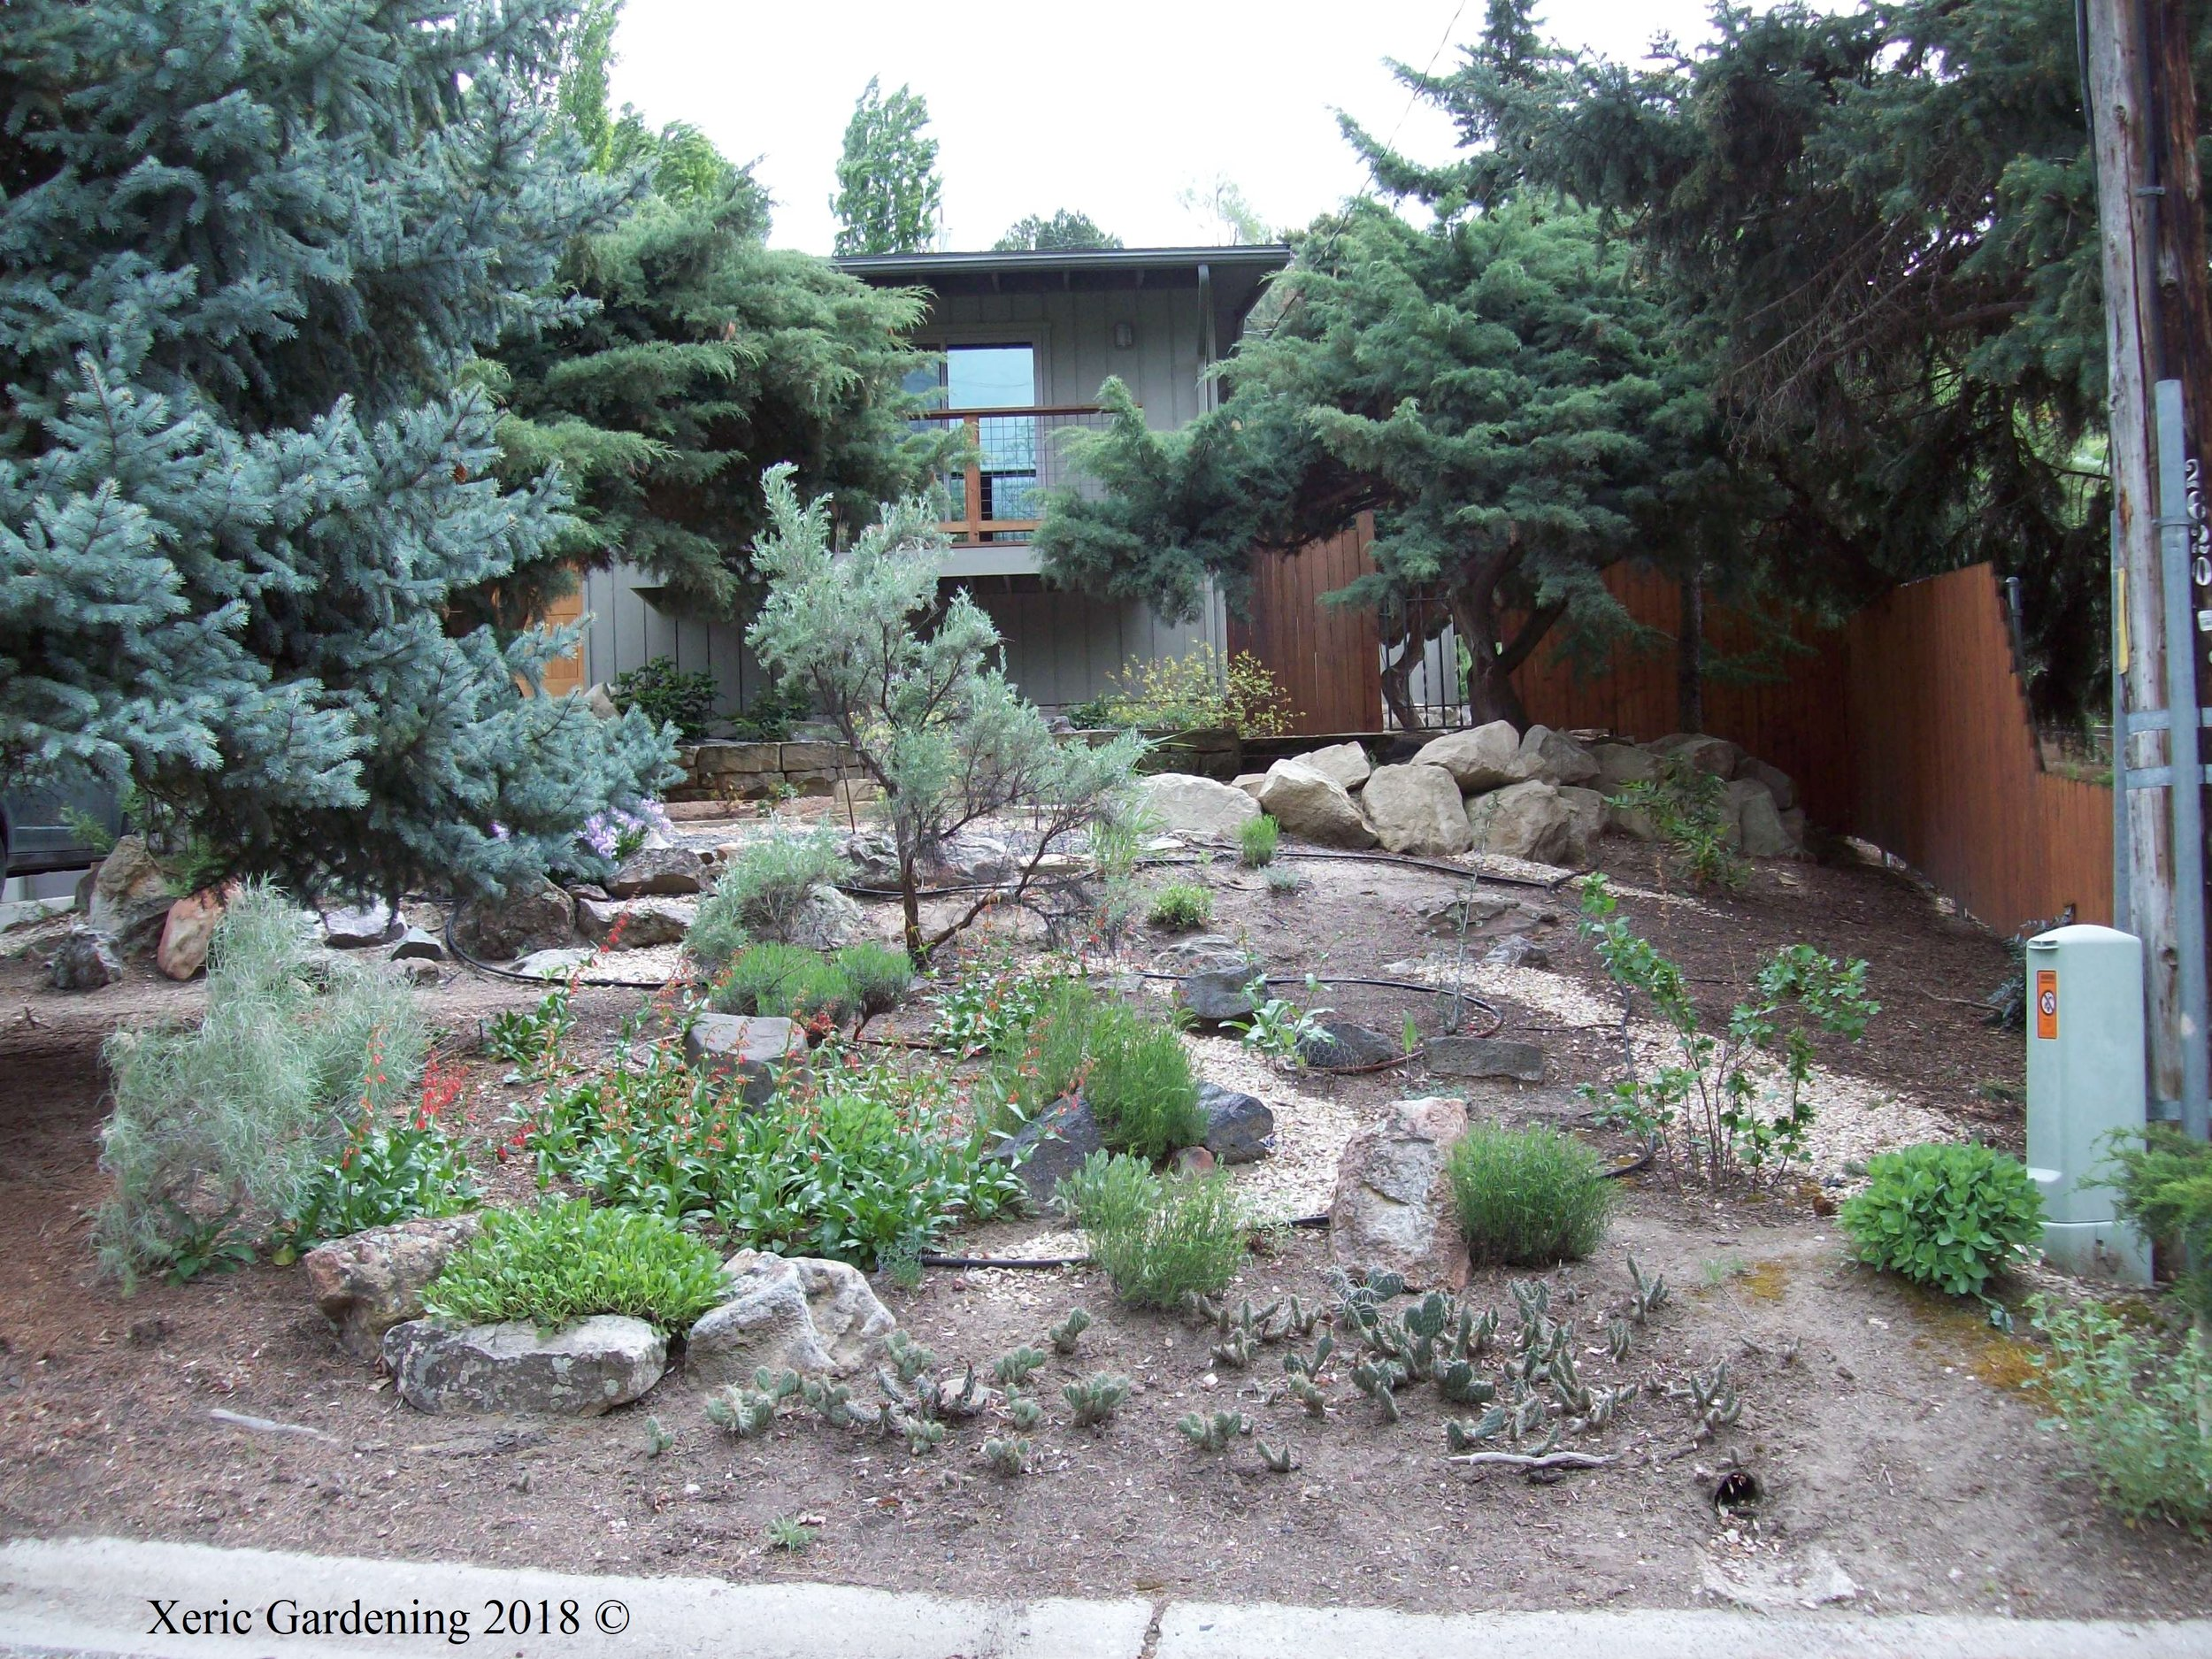 YEAR 3  With this garden being watered once weekly, plants are blooming, self-propagating, and filling in the space.